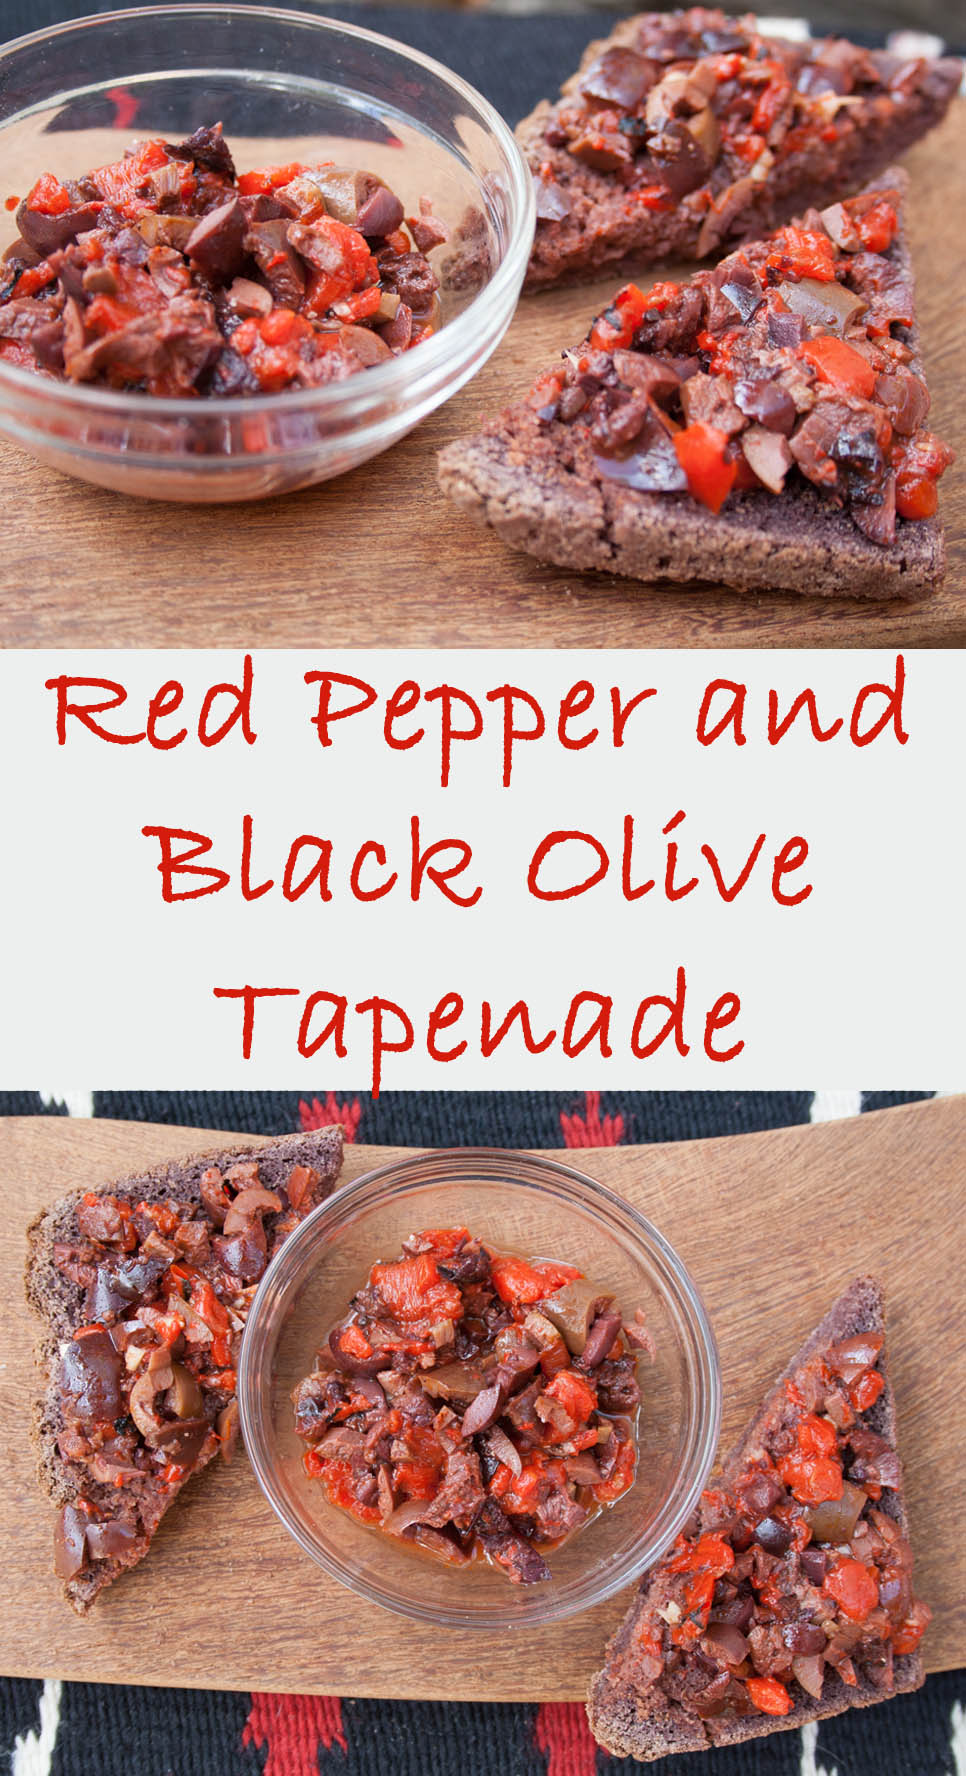 Red Pepper and Black Olive Tapenade collage photo with text.